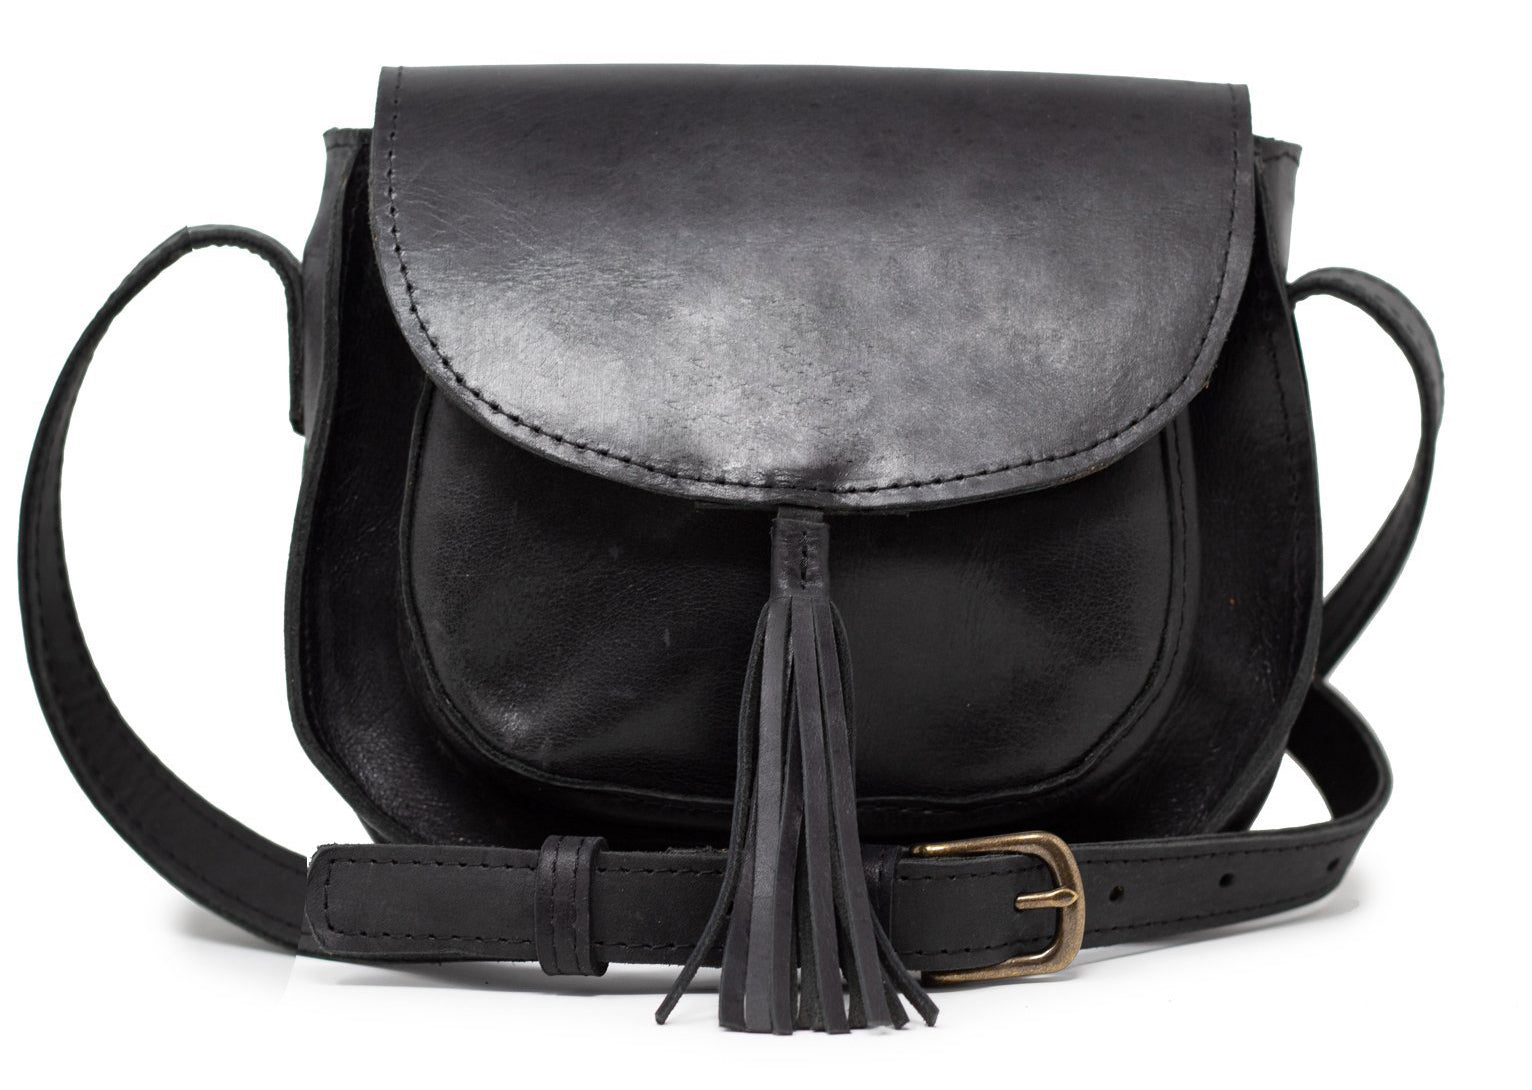 Able - Black leather shoulder bag - S19 tassel crossbody black bag